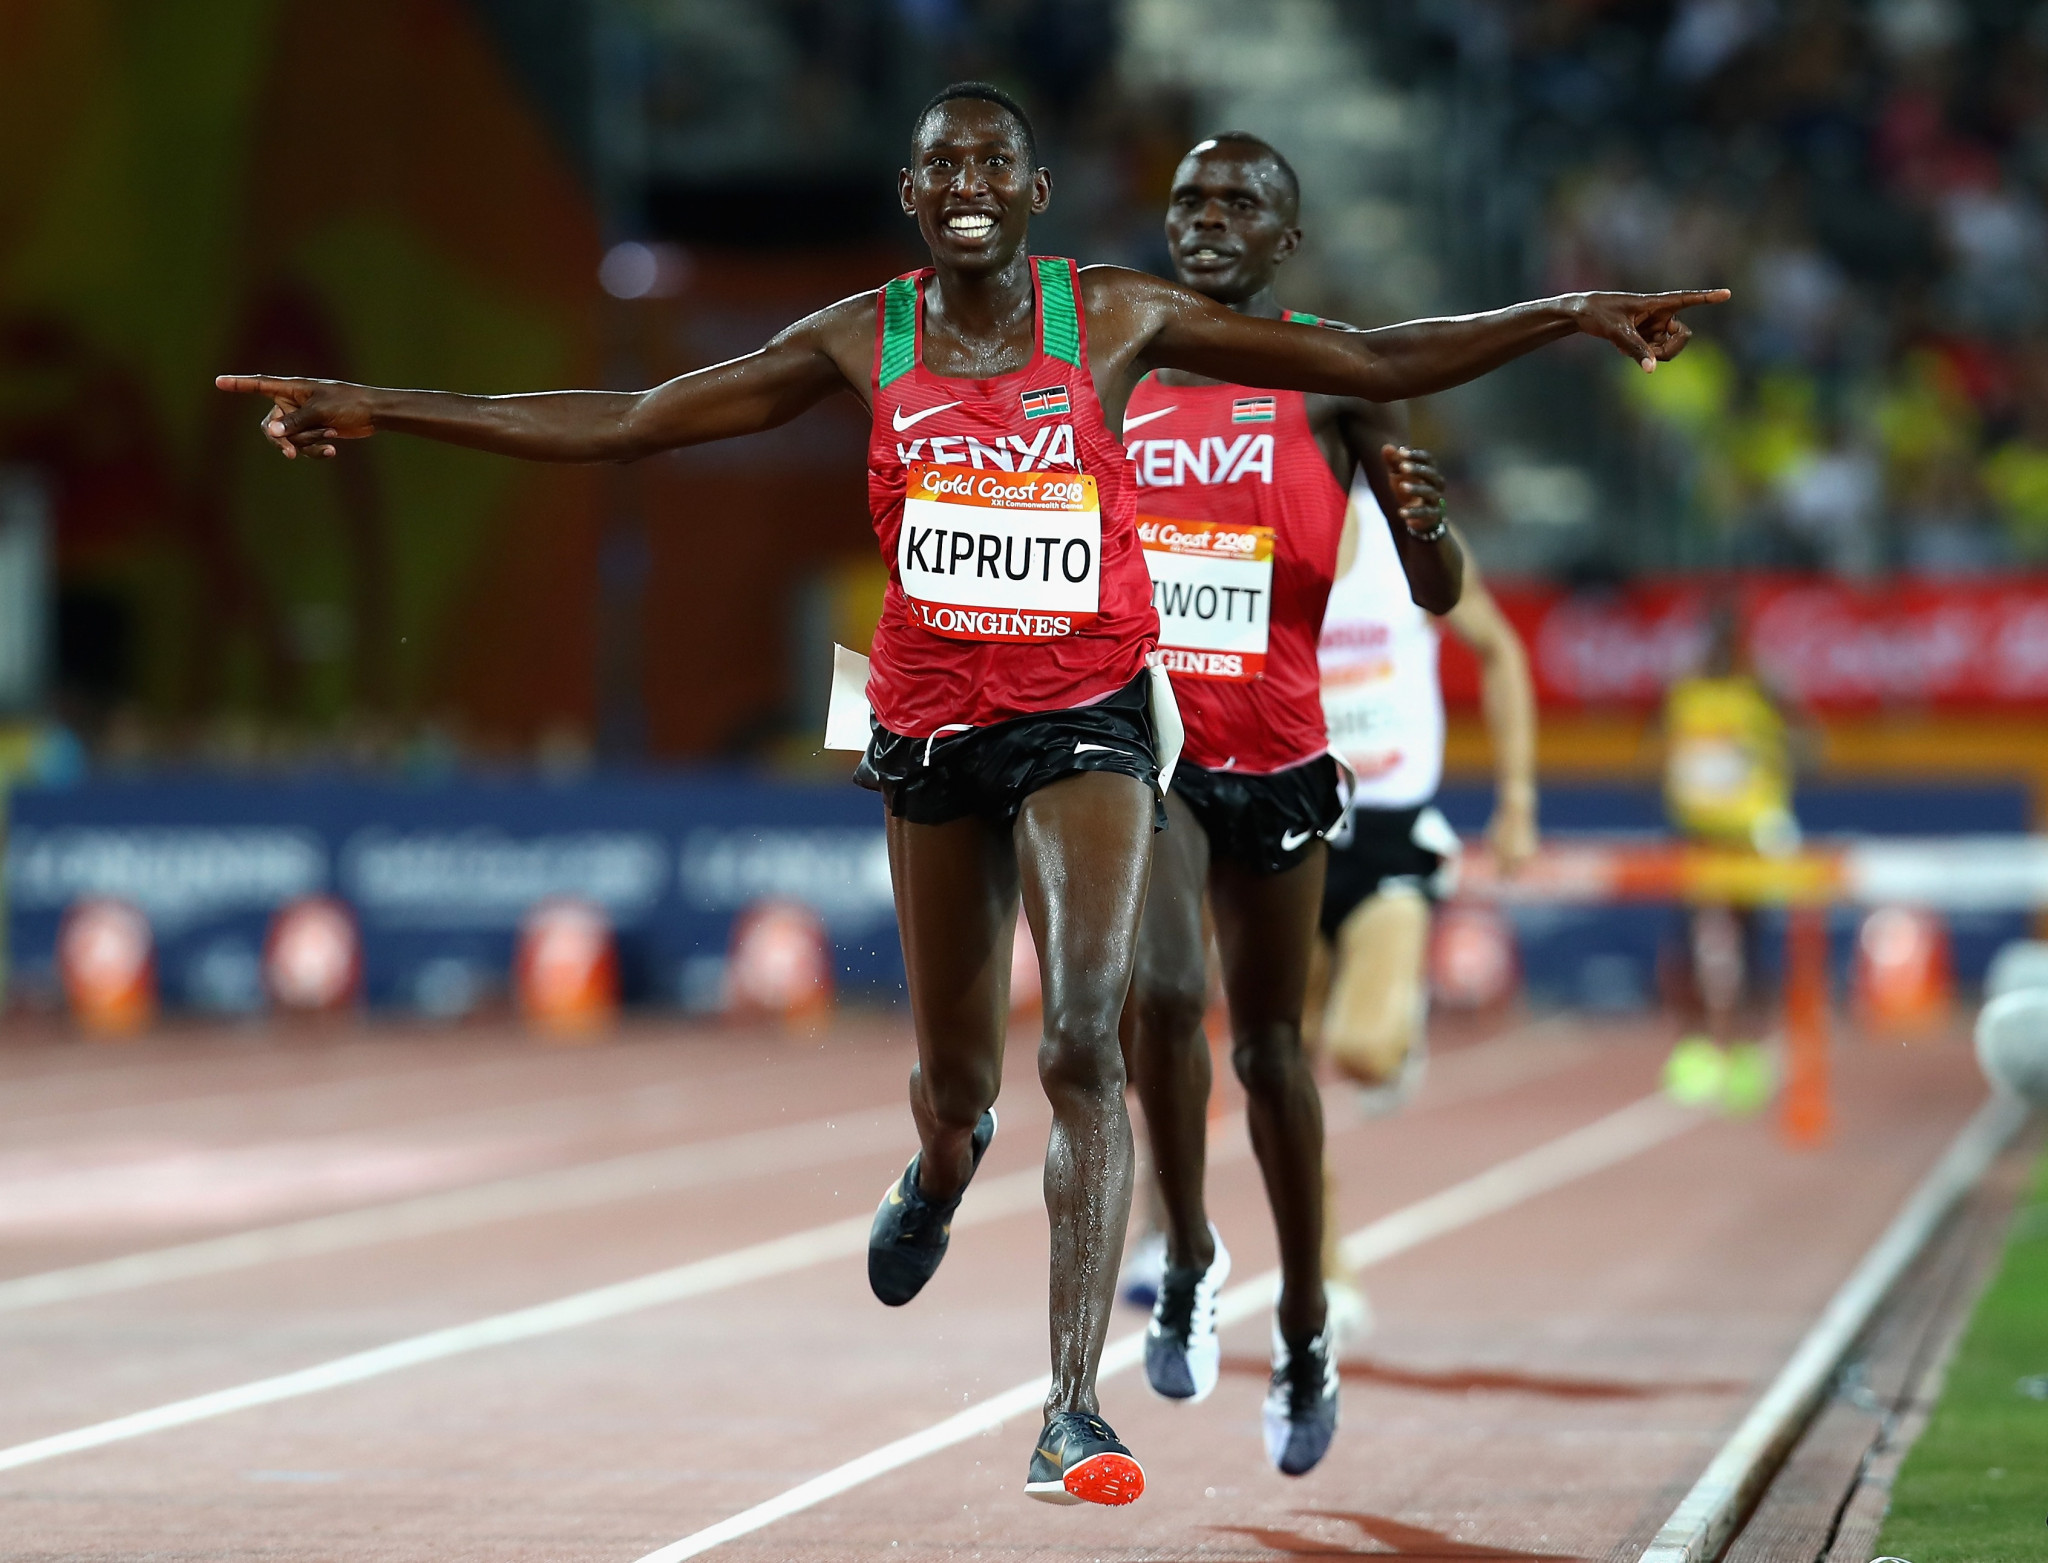 Kenya's Olympic 3,000m steeplechase champion Kipruto out of Monaco meeting after positive COVID-19 test